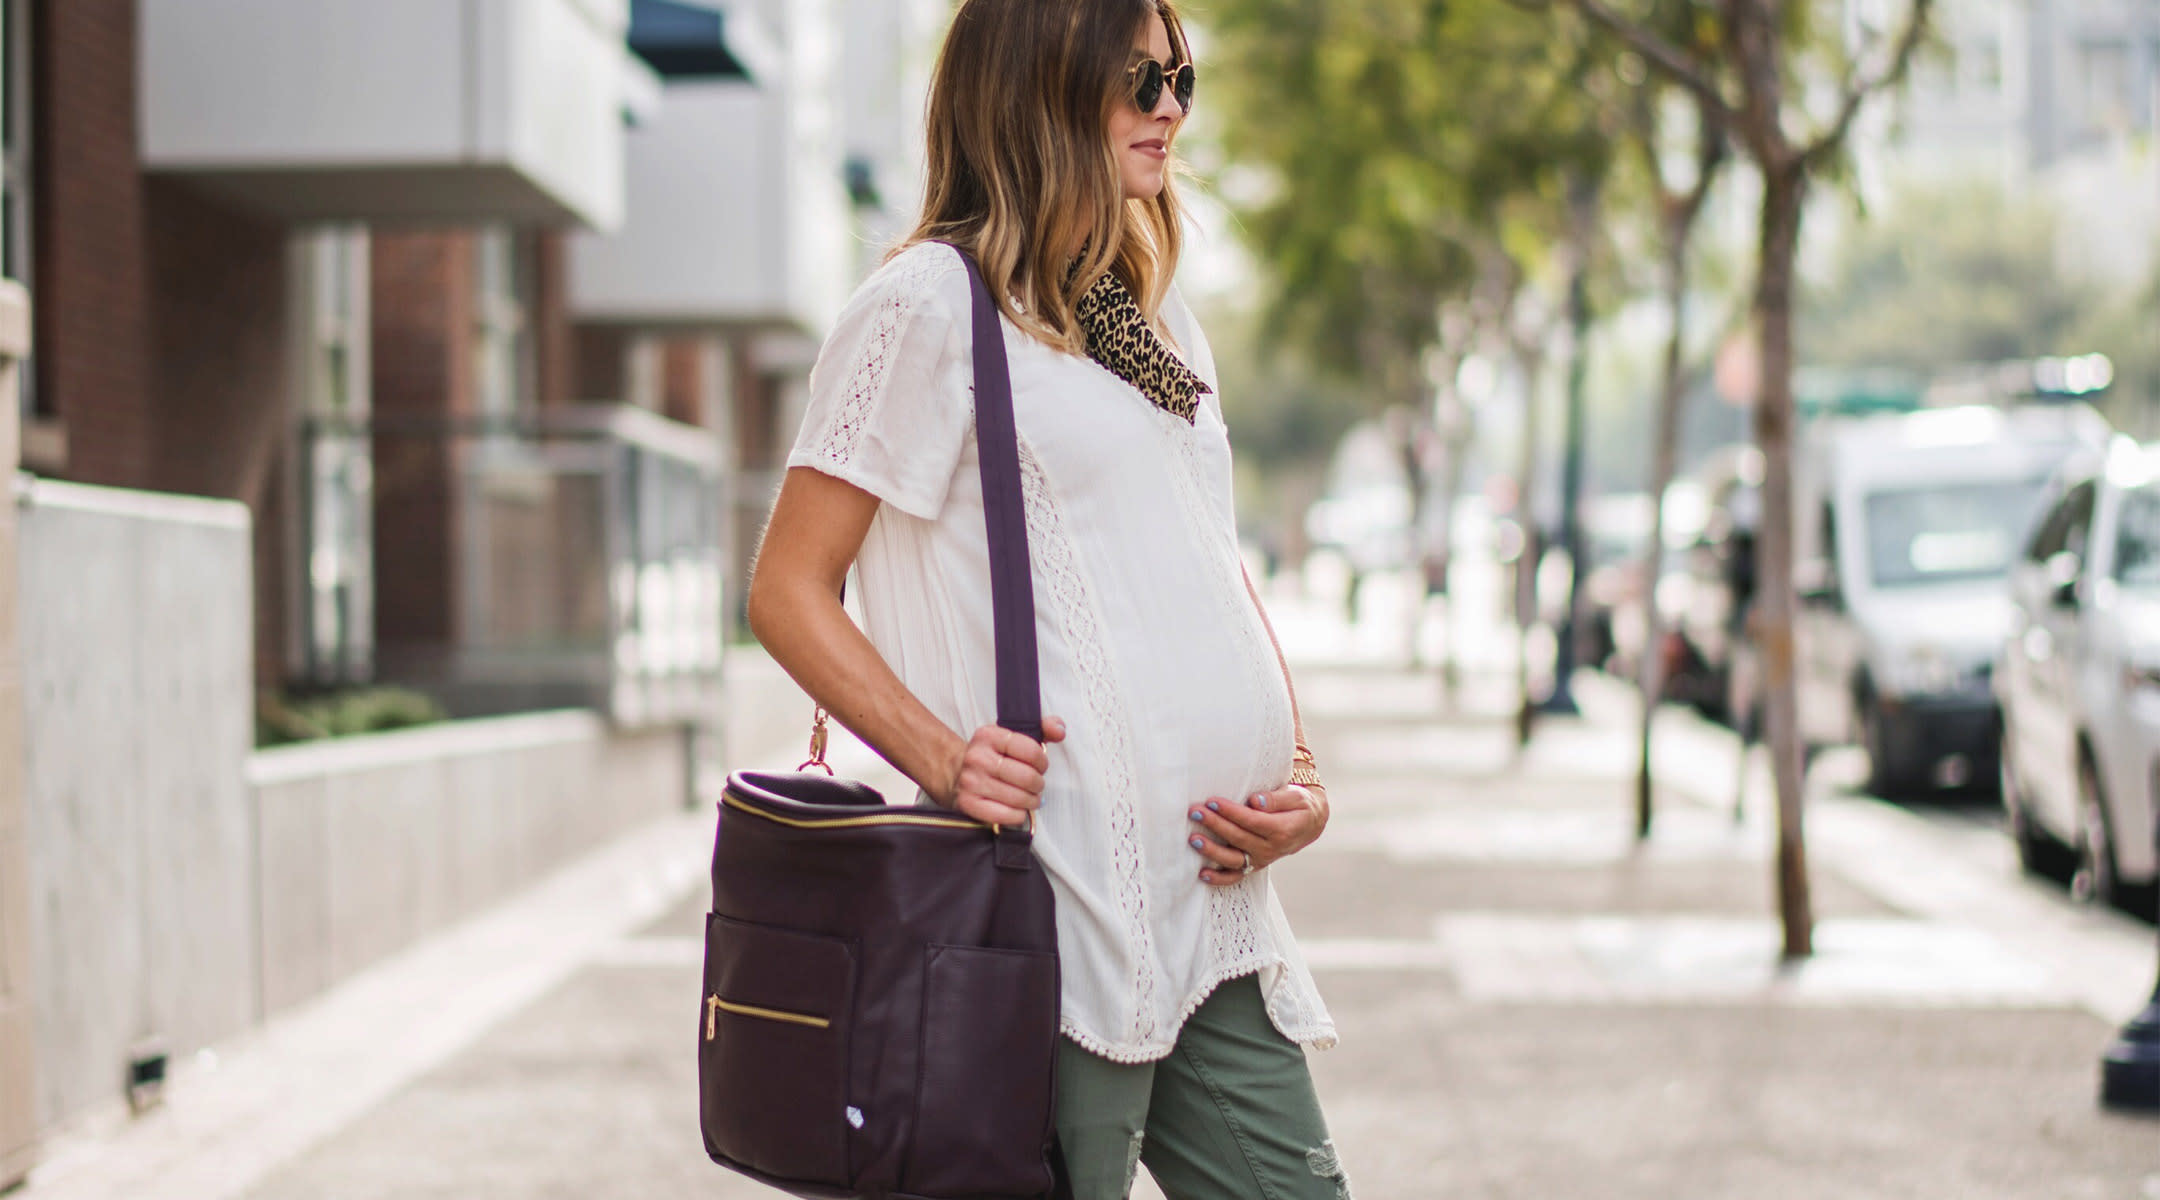 pregnant woman wearing work outfit